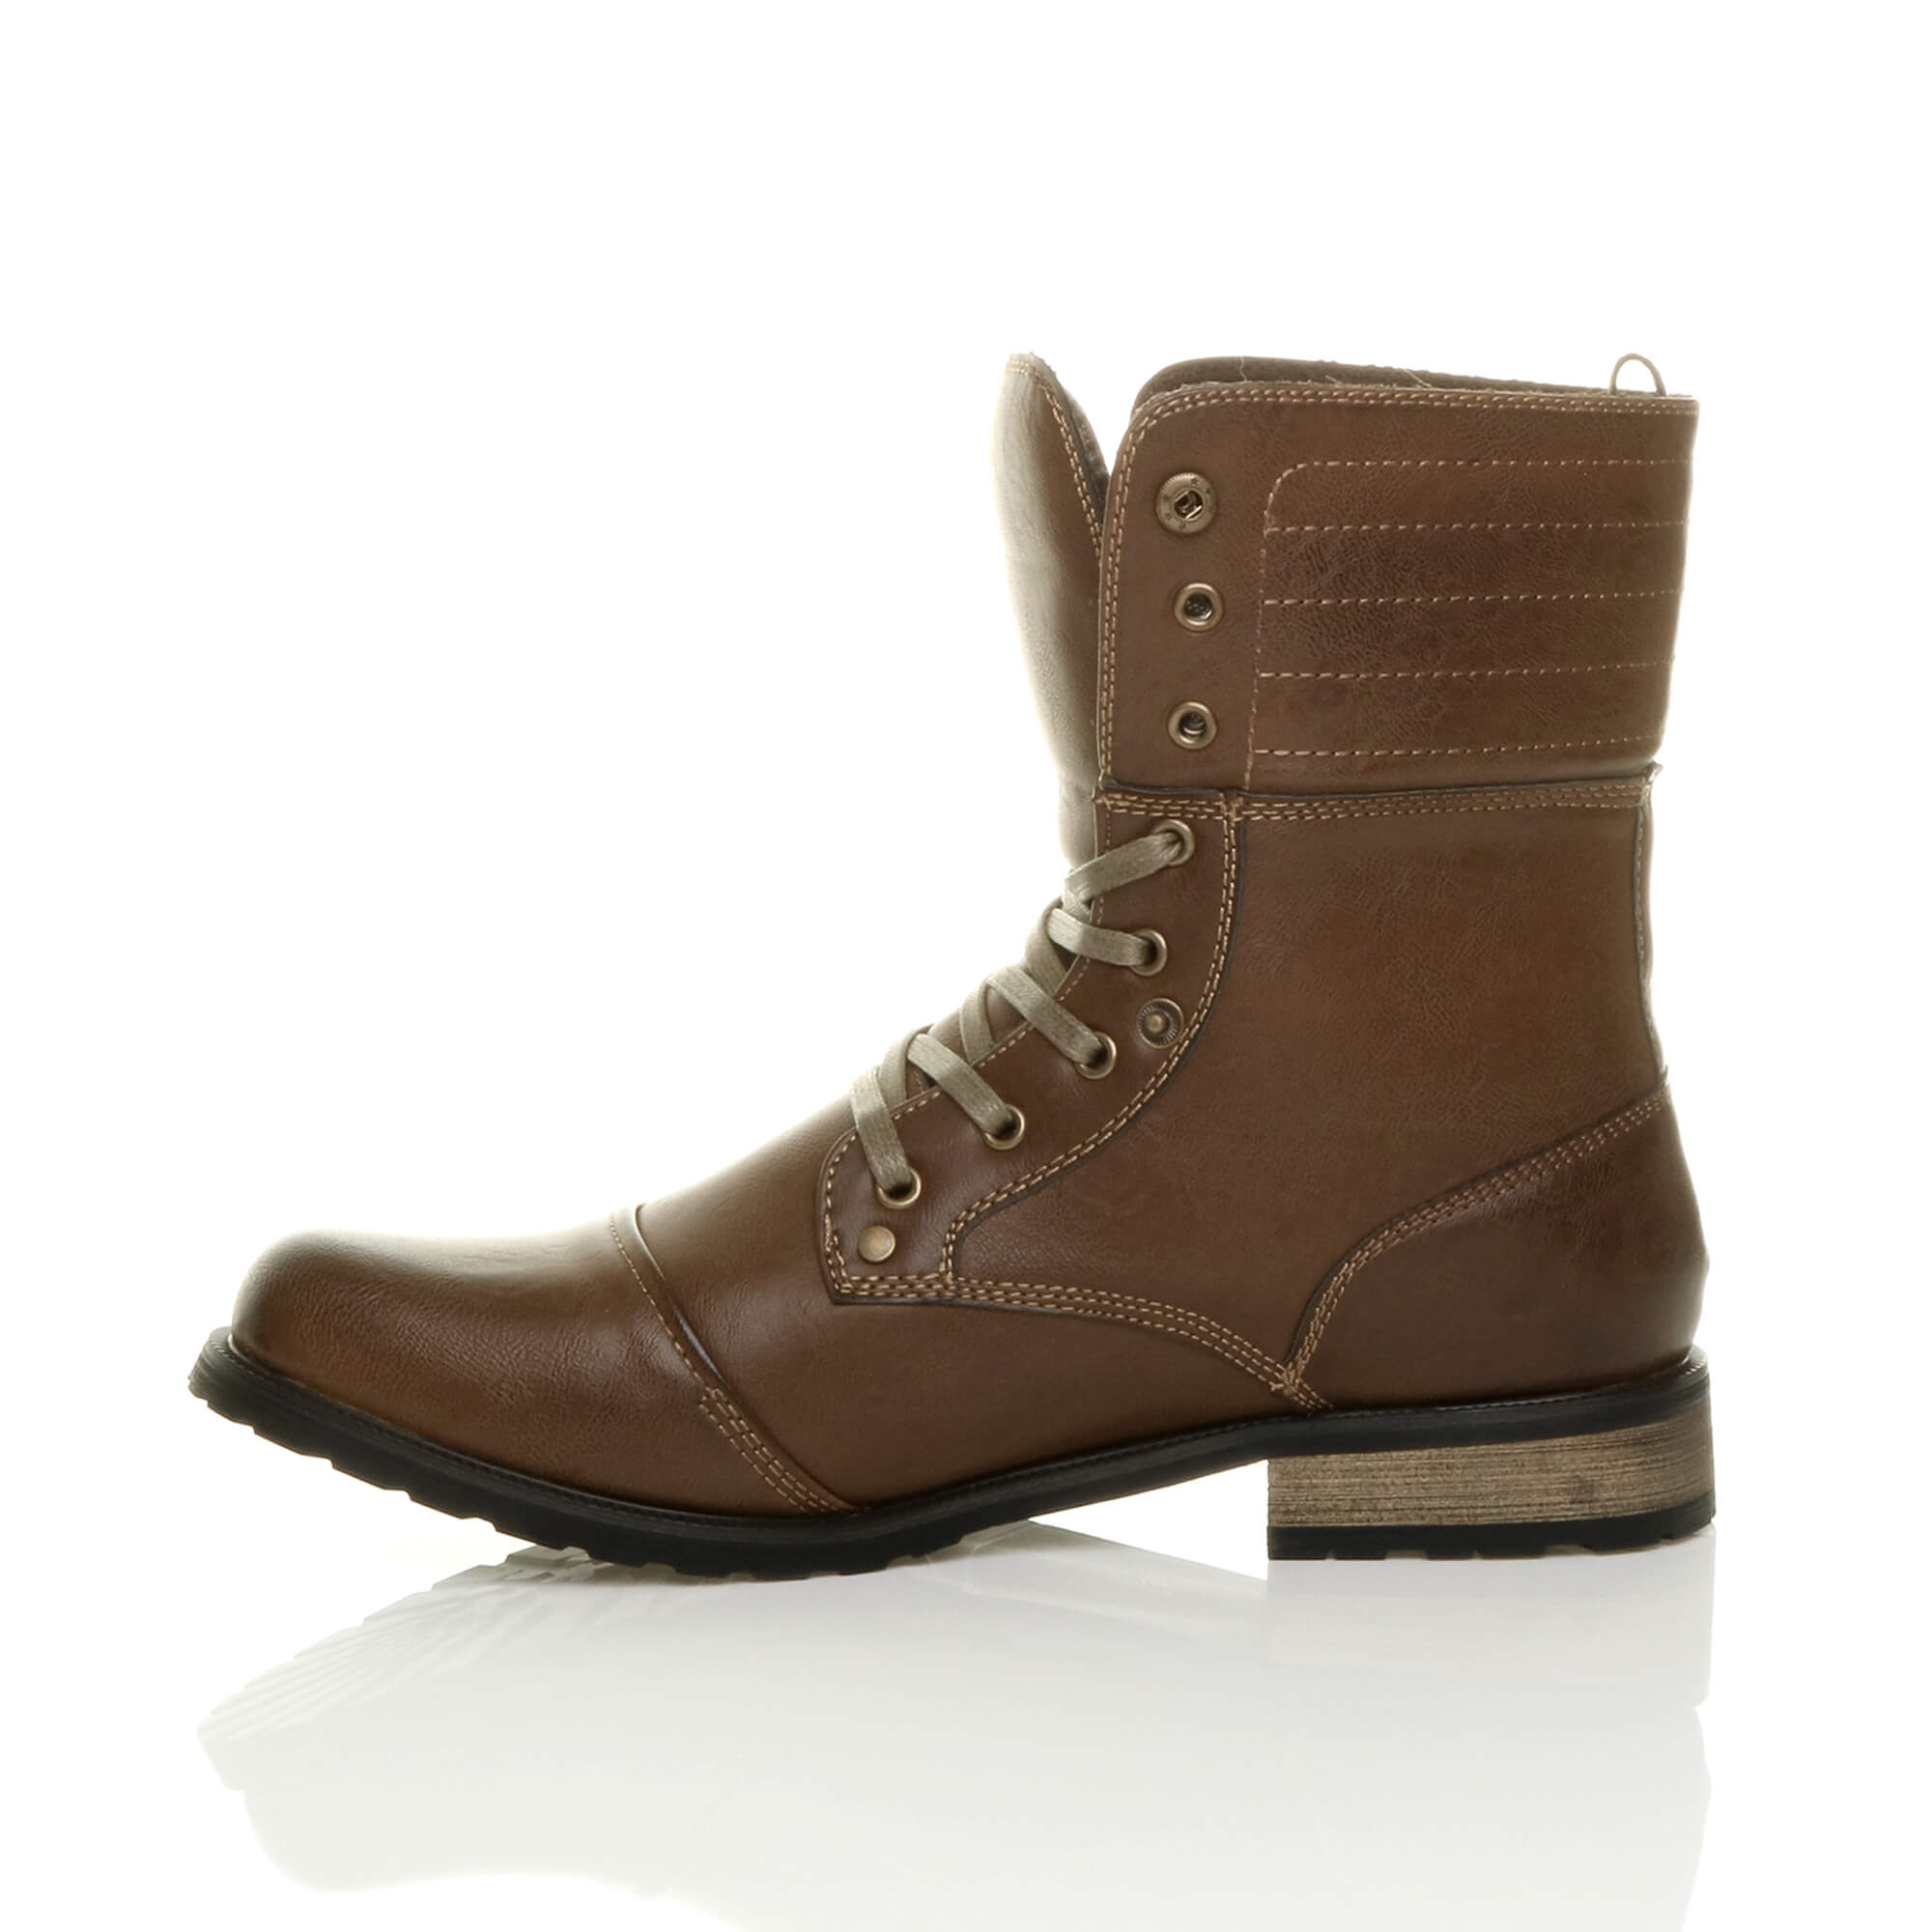 Mens-lace-up-low-heel-flat-fold-over-padded-cuff-military-ankle-boots-size miniatuur 12